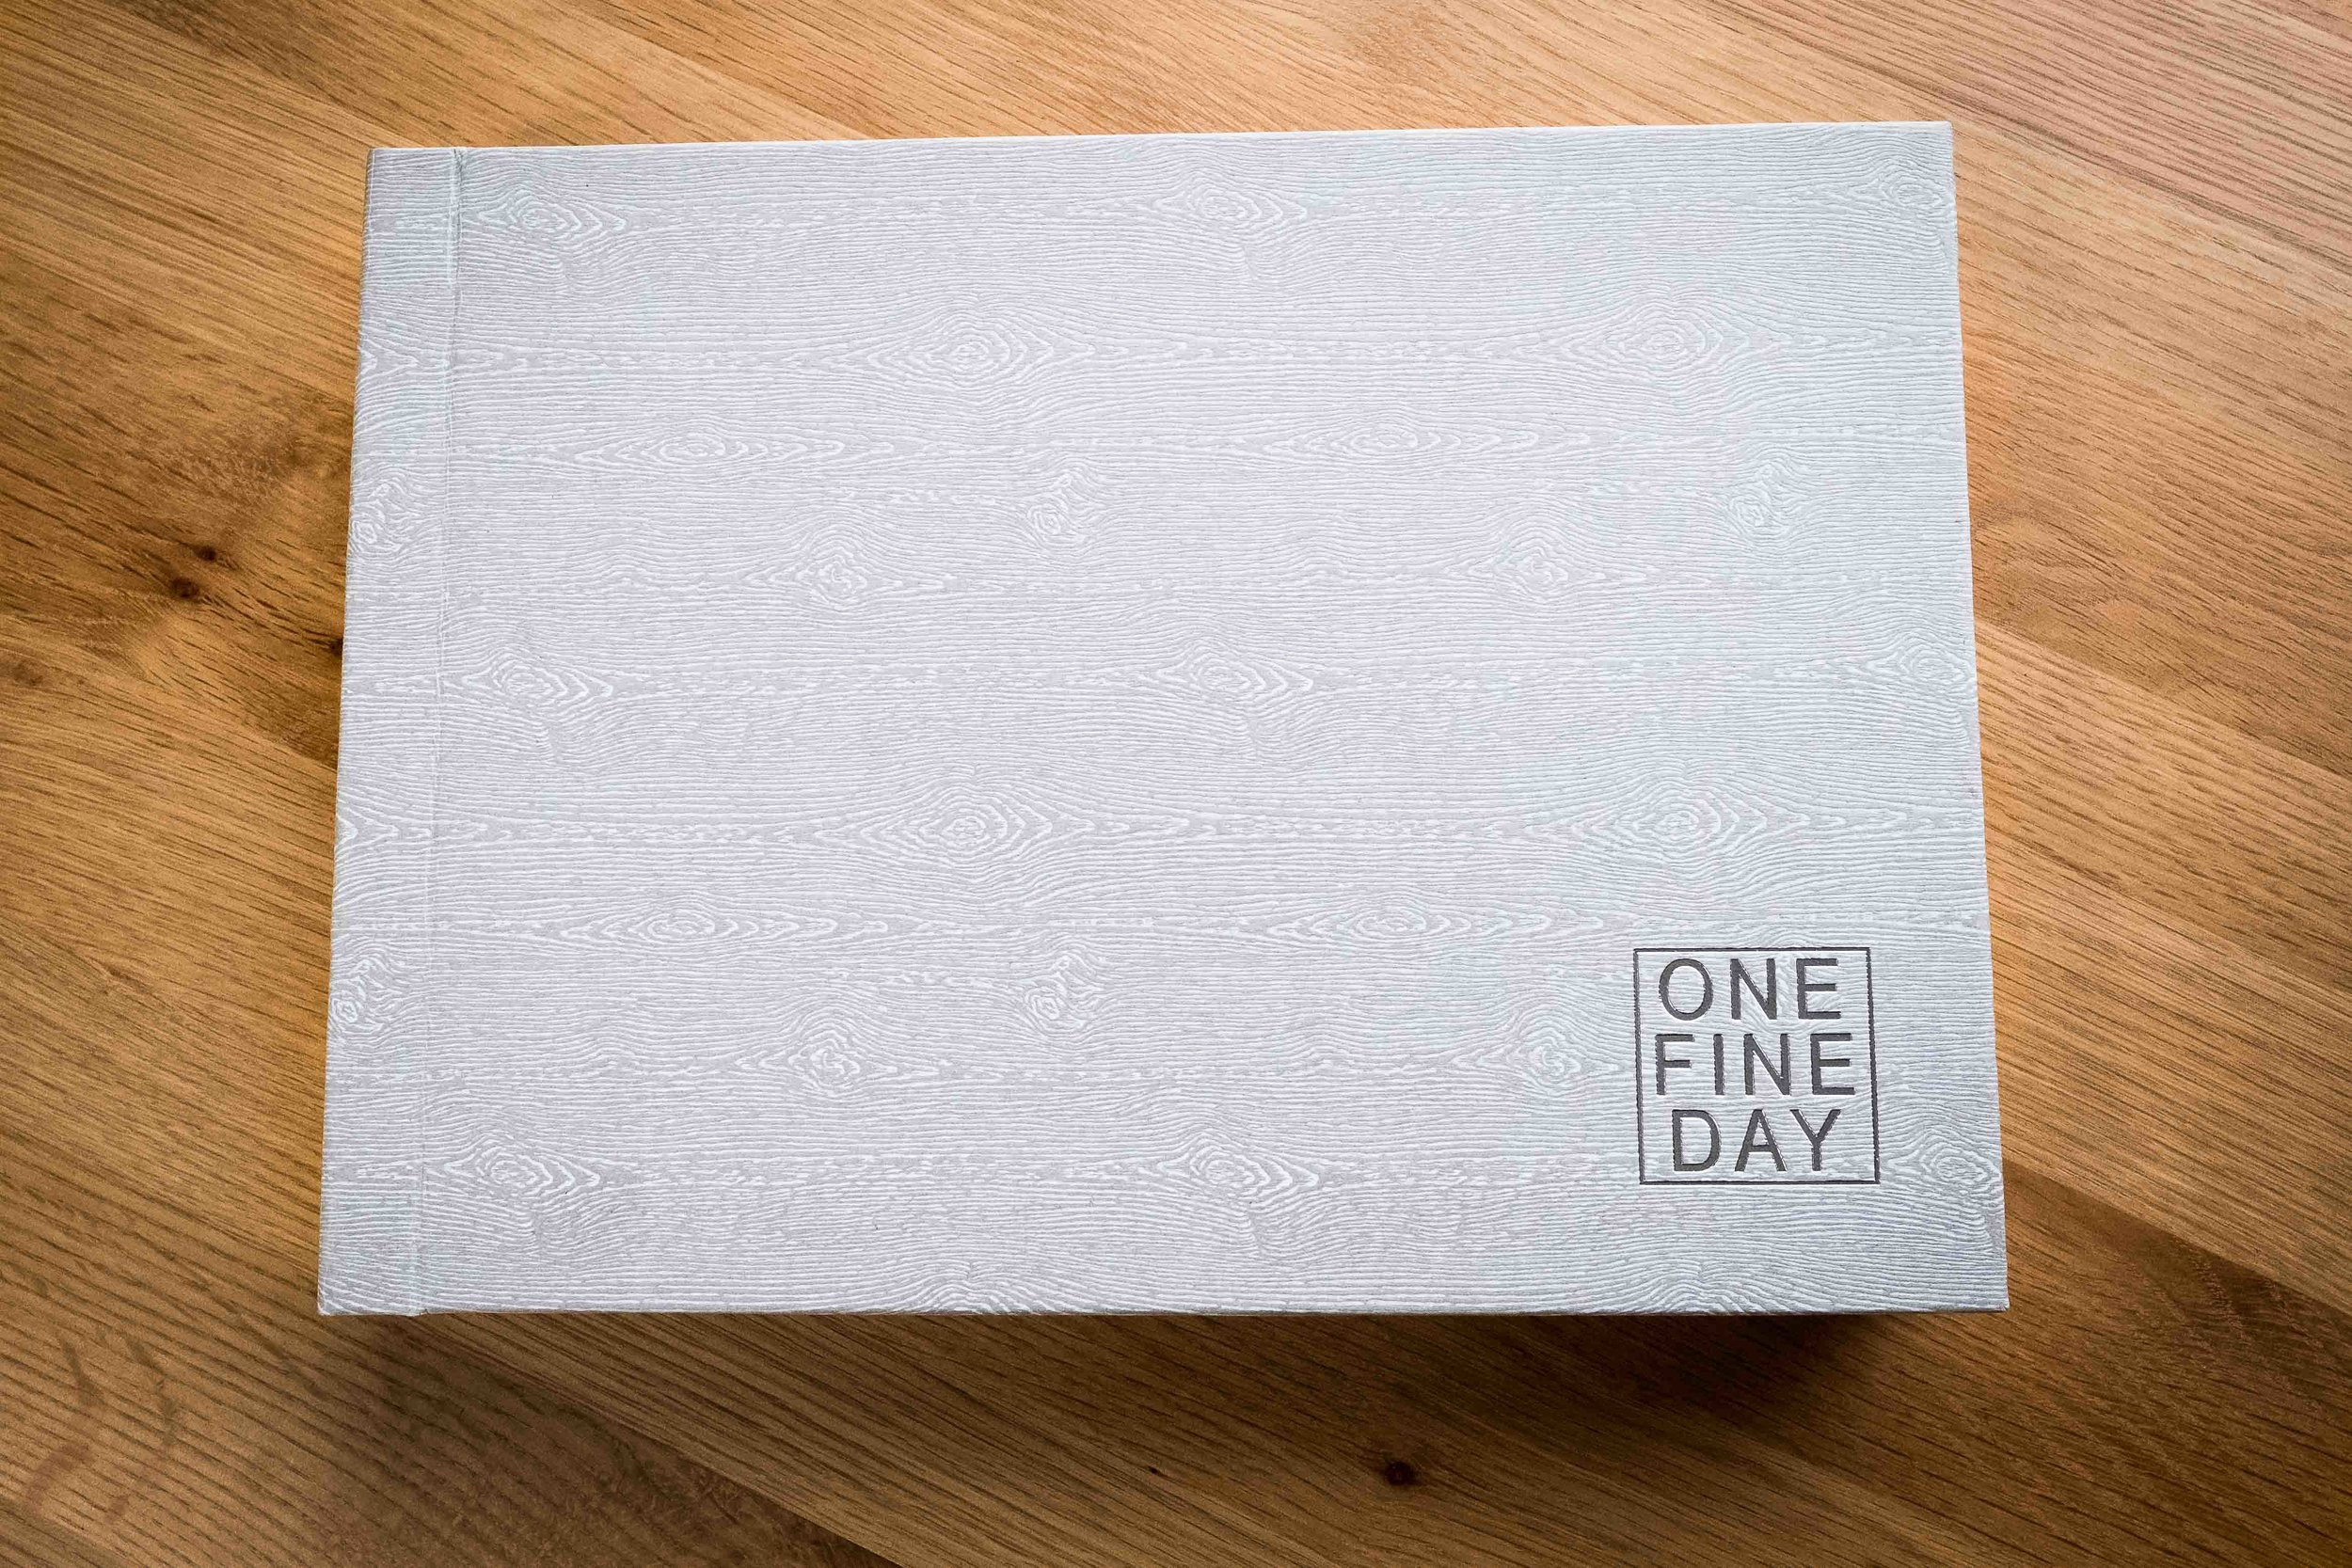 One Fine Day Album.jpg